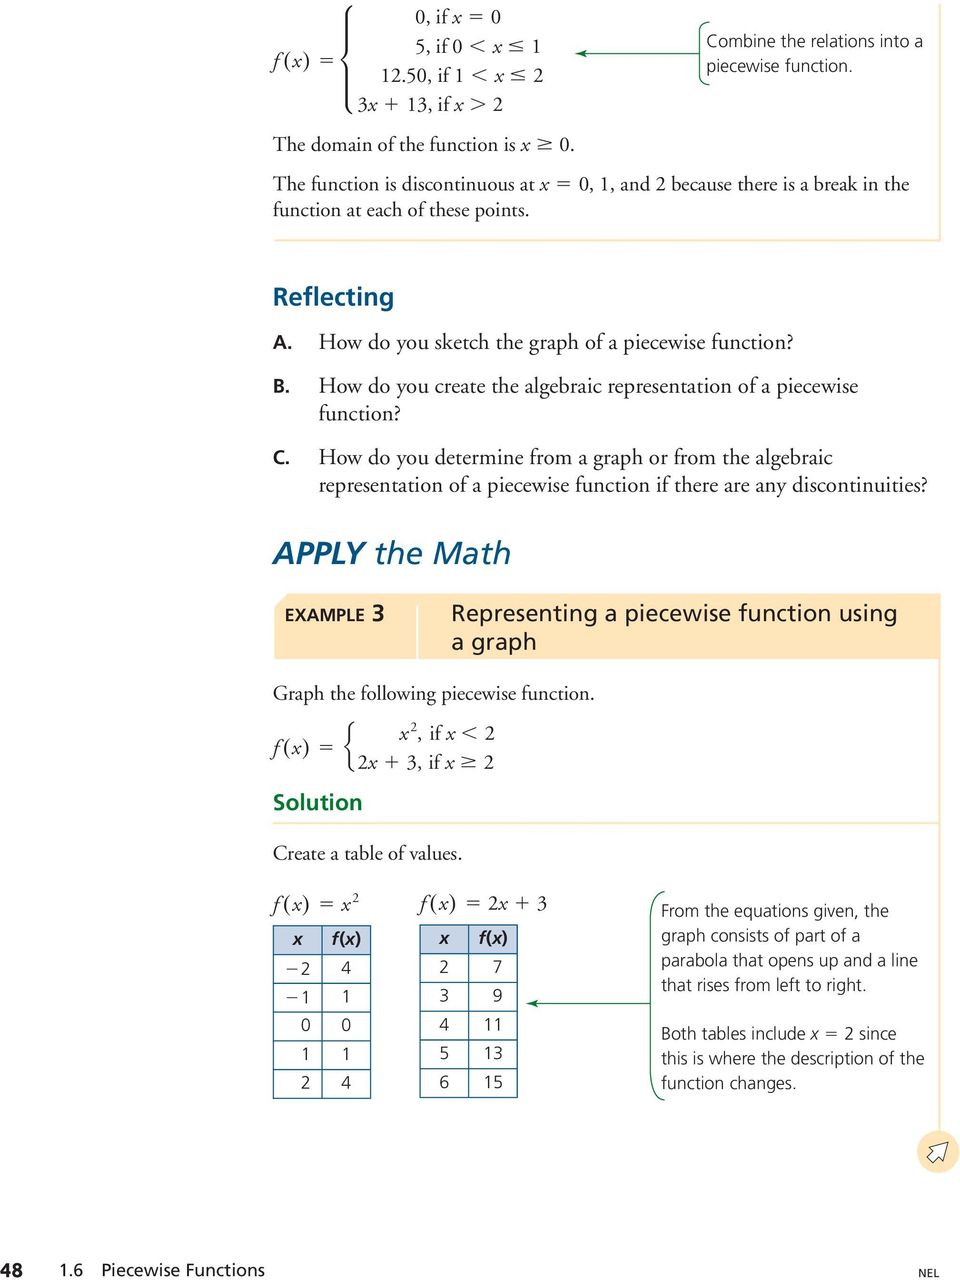 How do you create the algebraic representation of a piecewise function? C.